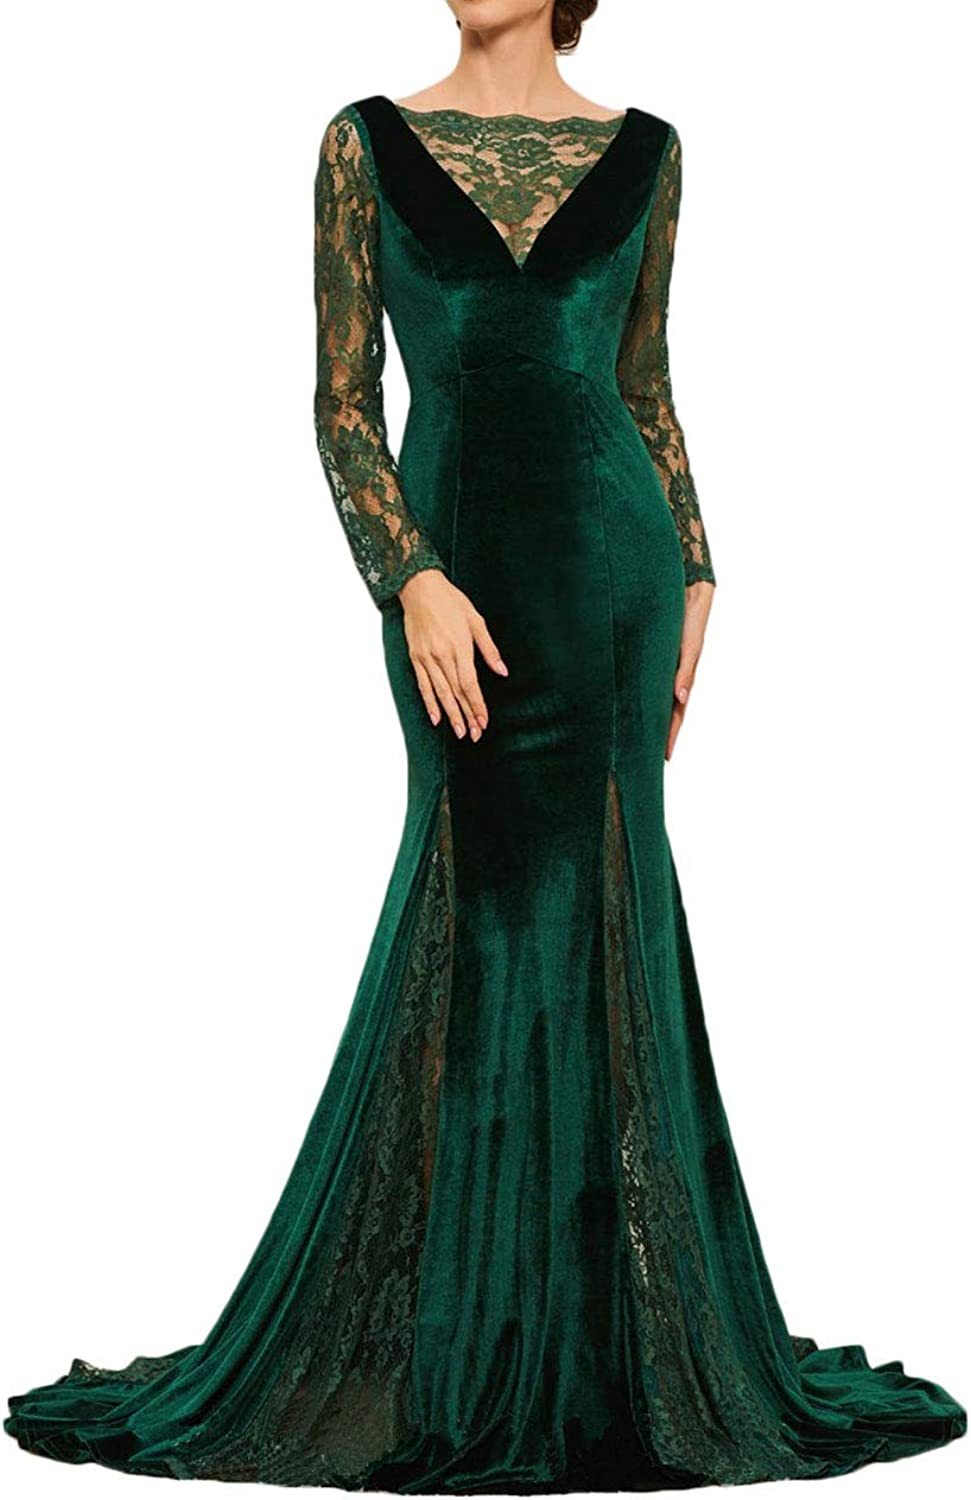 Alilith.Z Sexy V Neck Velvet Prom Dresses 2019 Mermaid Long Sleeves Lace Evening Dresses Formal Party Gowns for Women